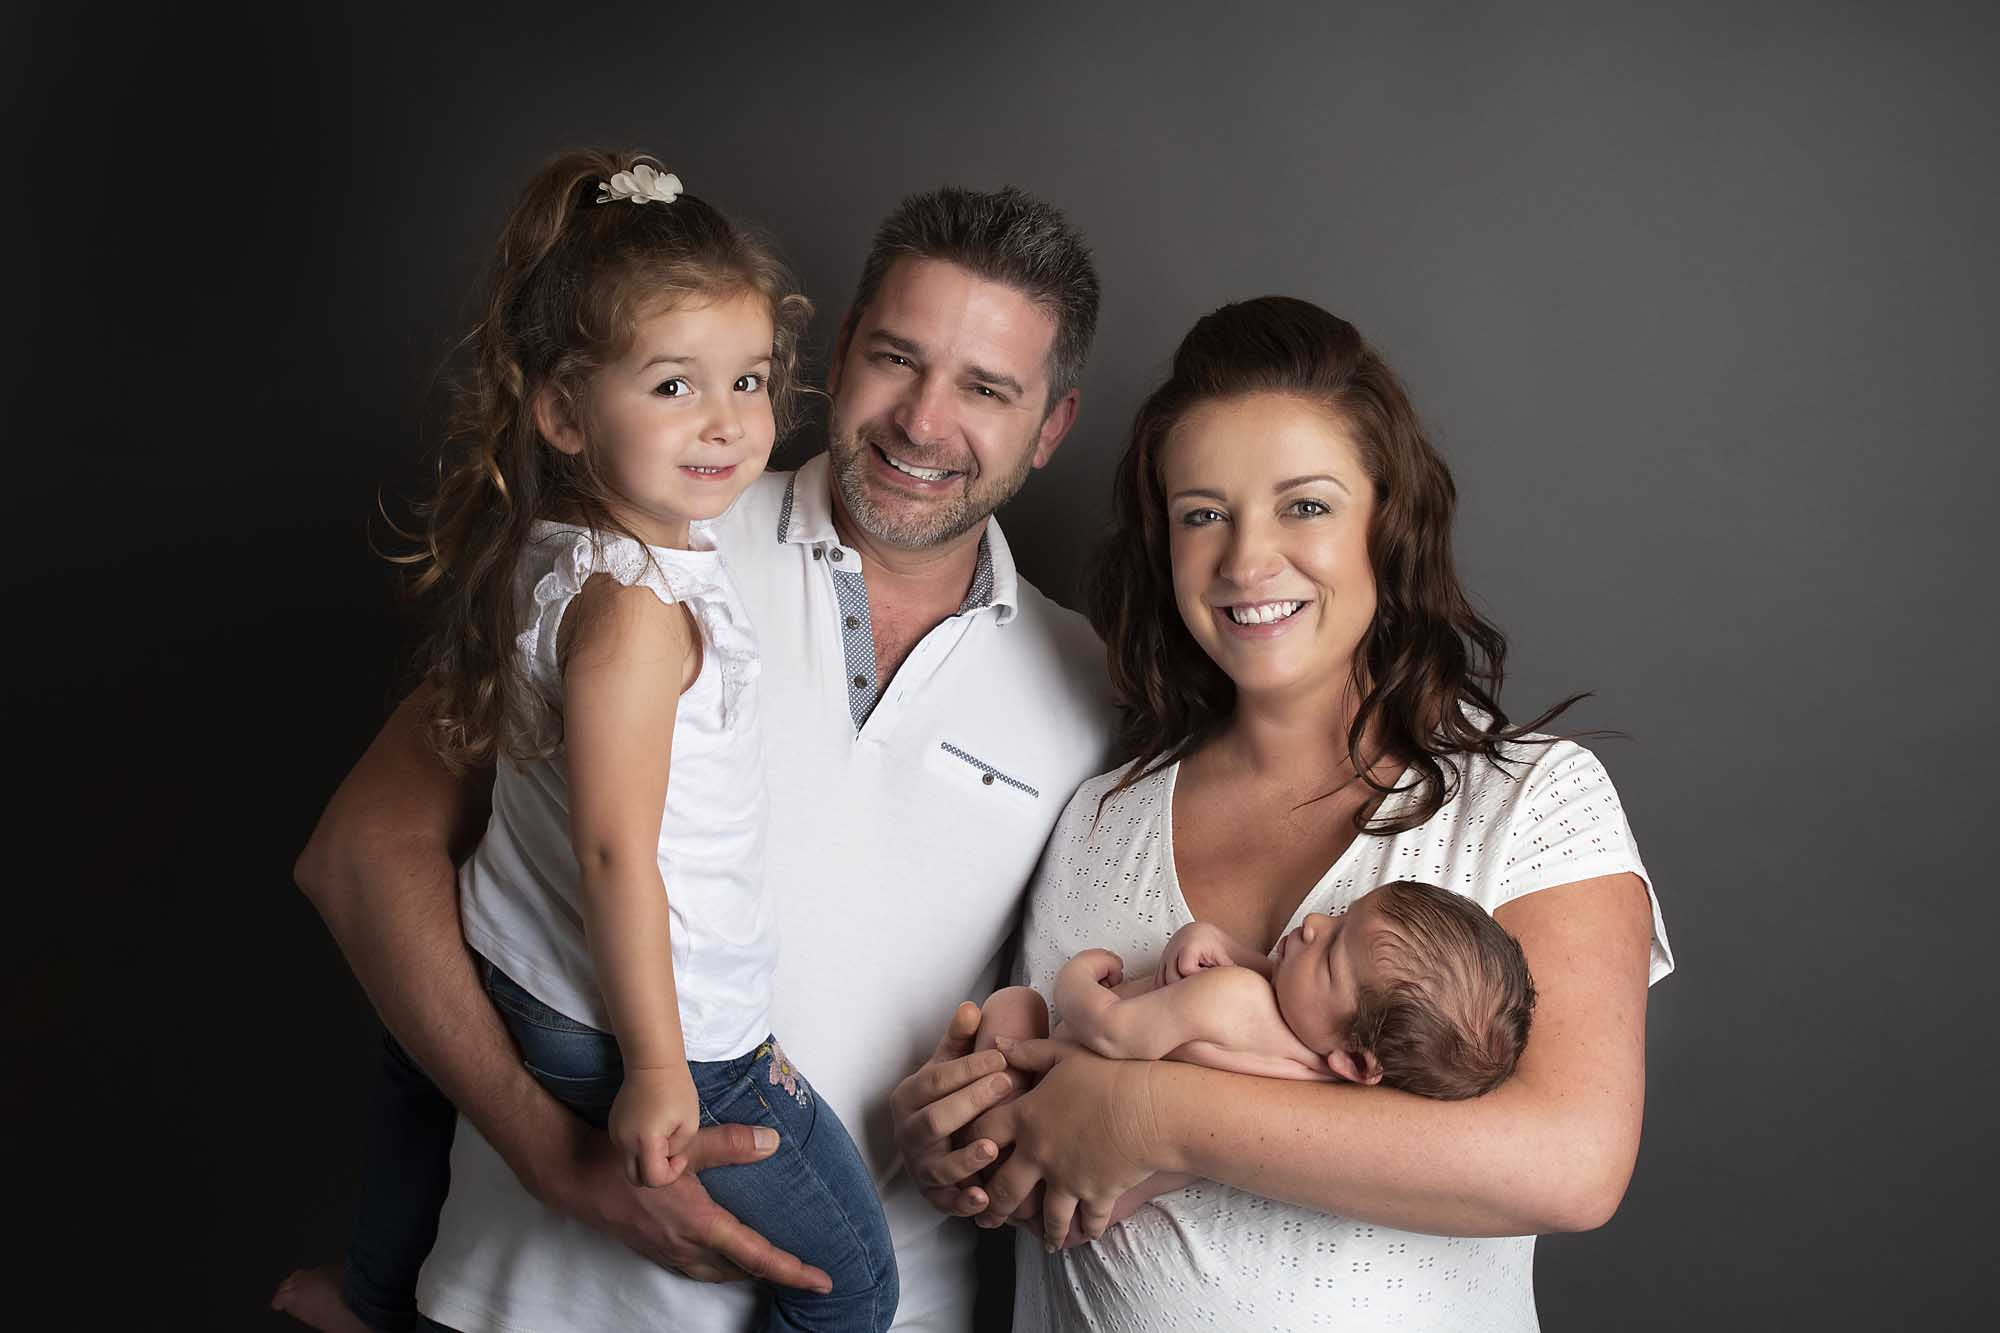 professional family portrait session photographed by family photography Manchester